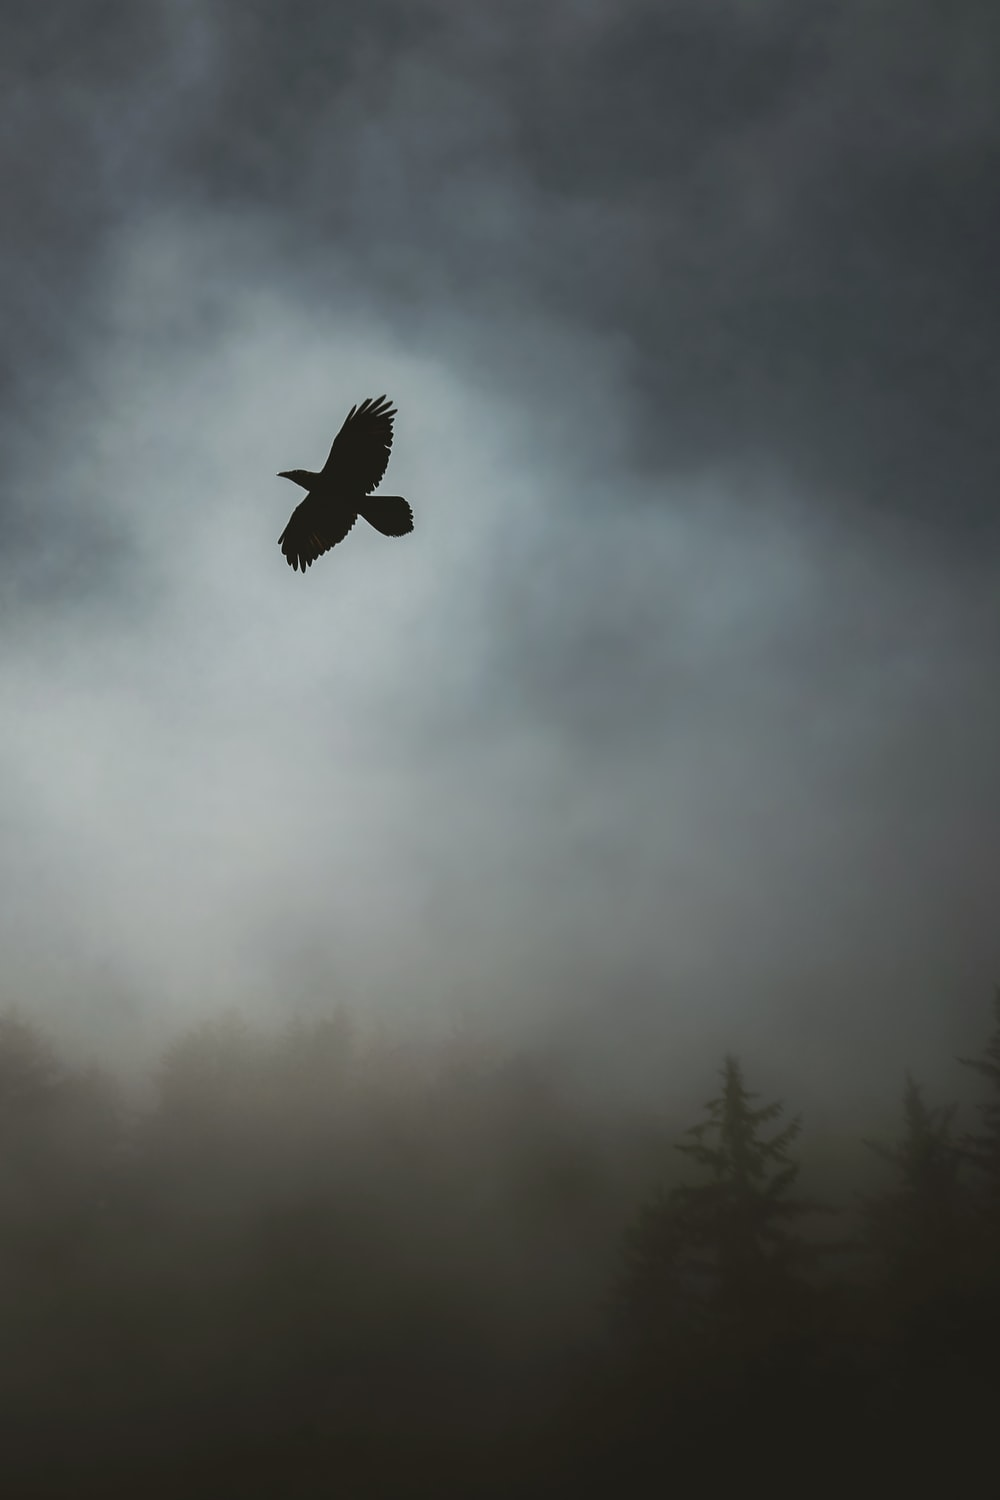 grayscale photography of bird flying in the sky